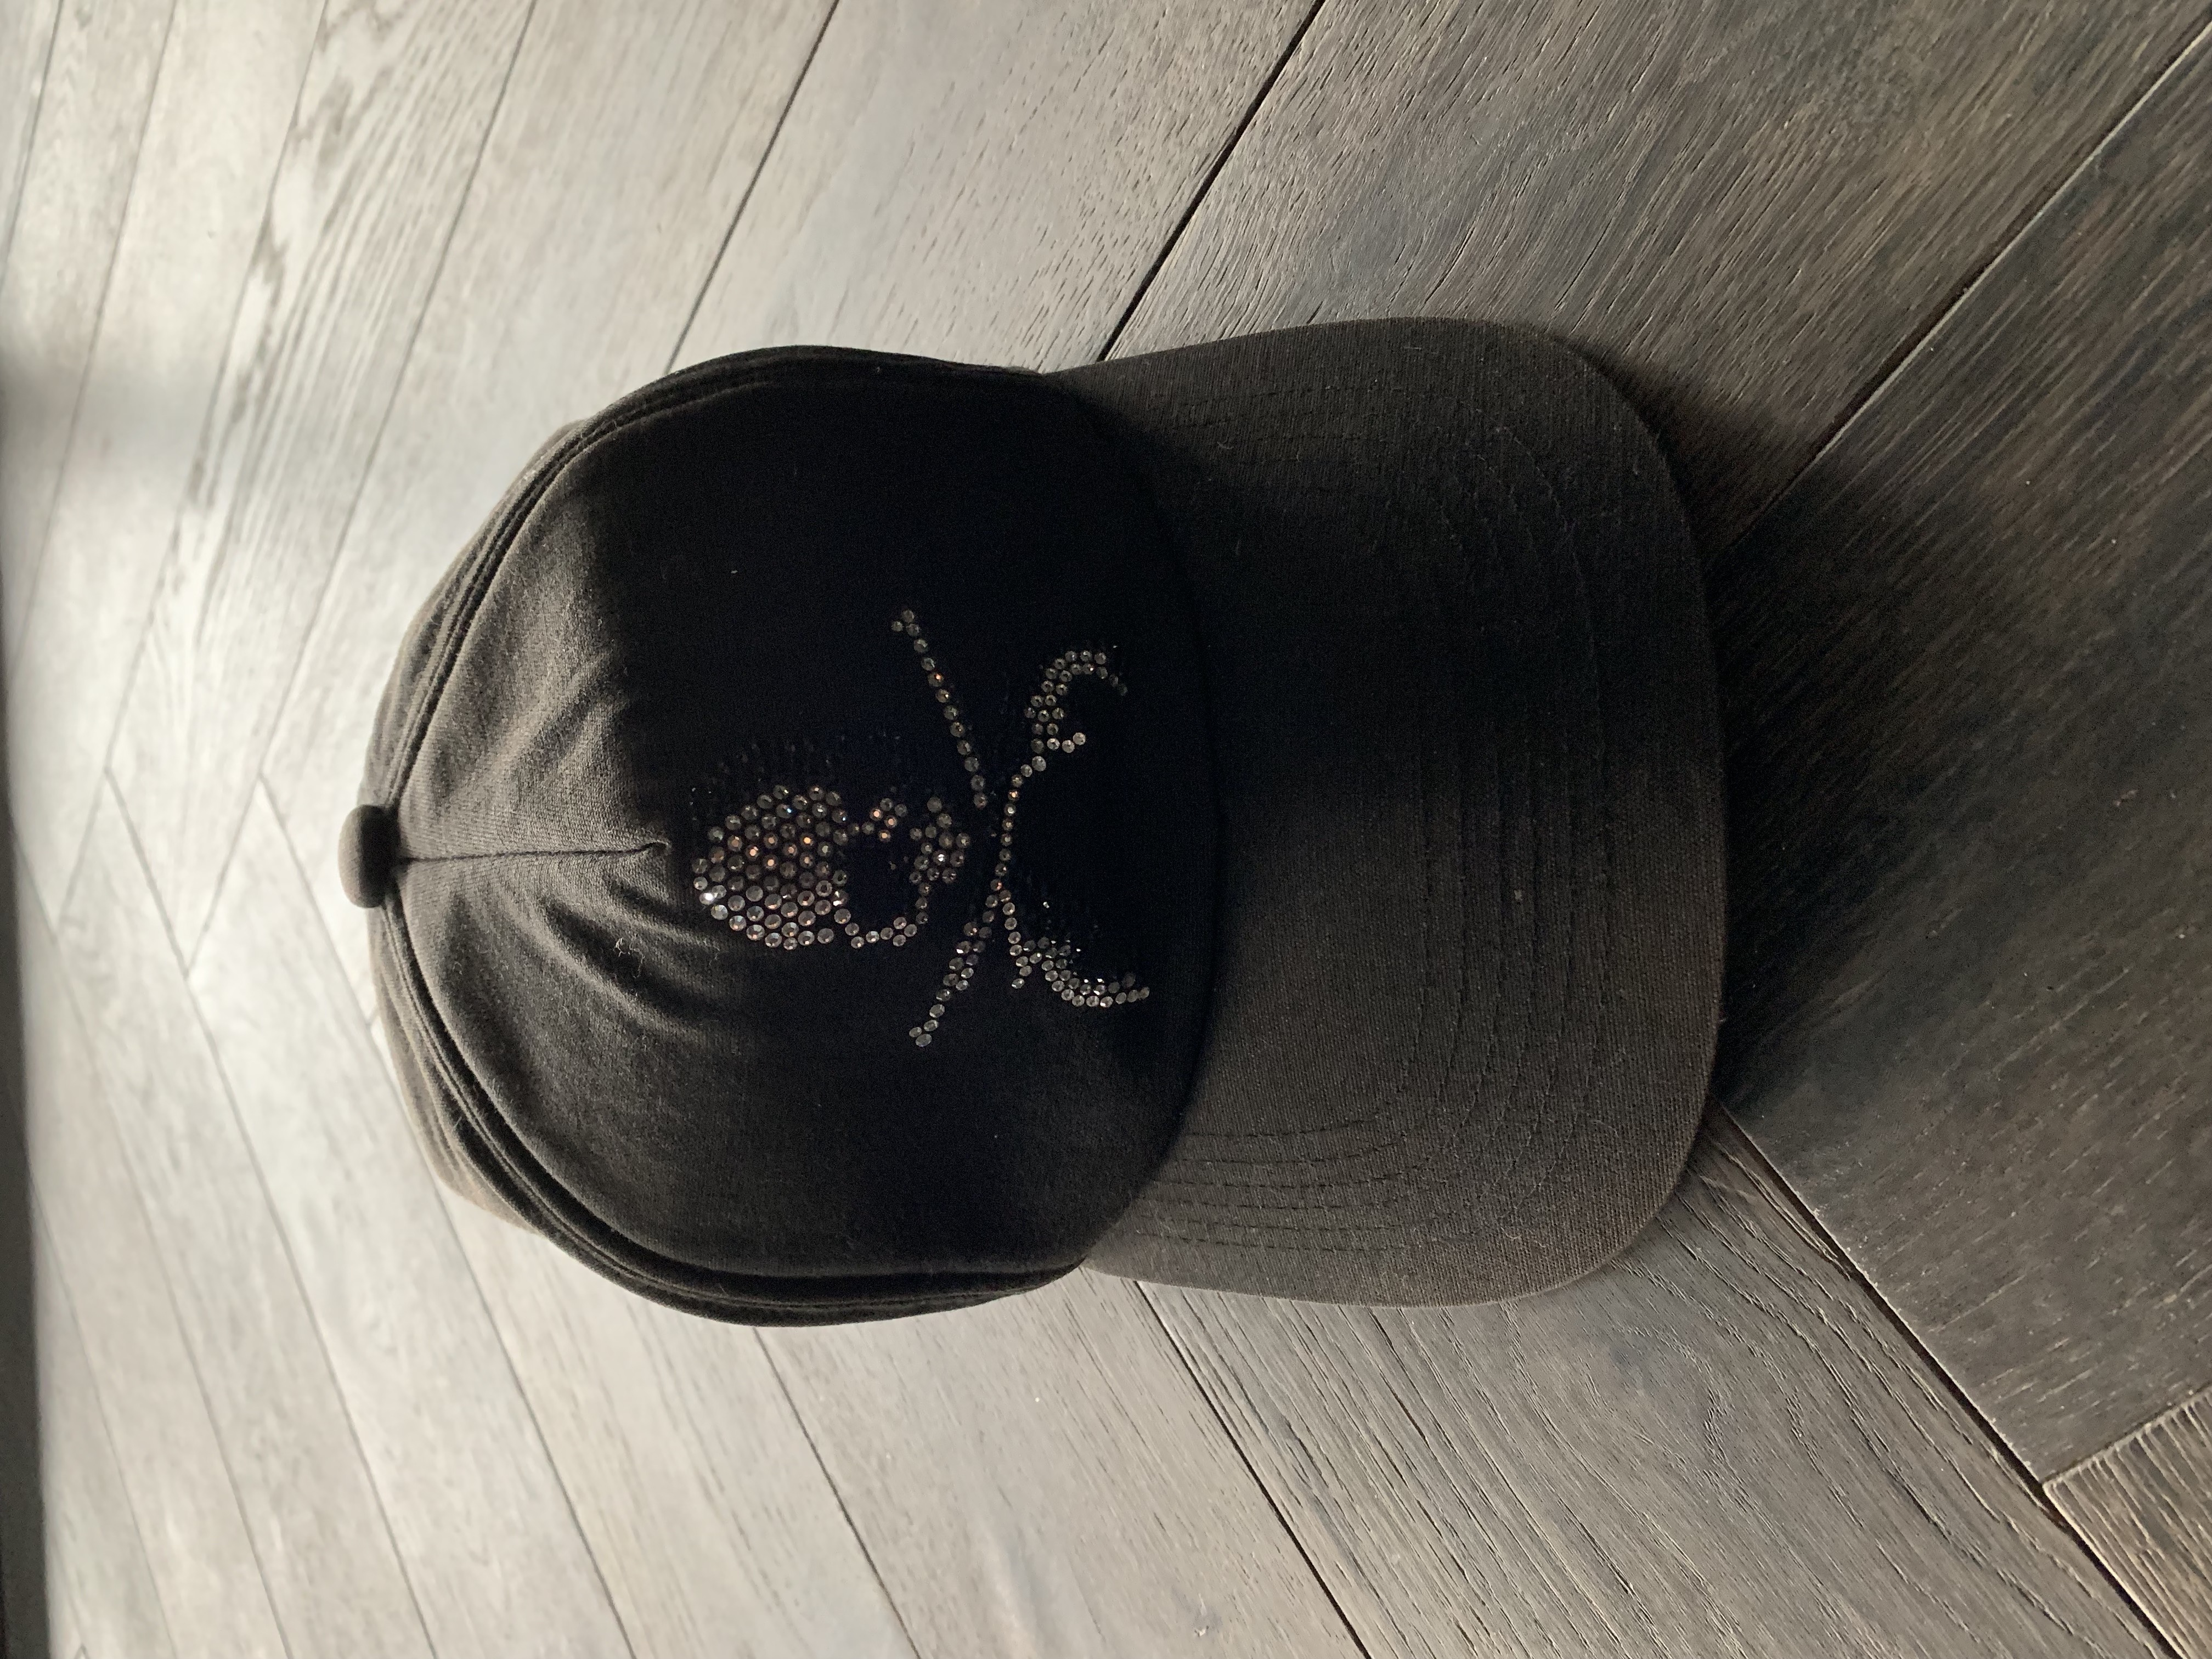 f672e176e48 Mastermind Japan Crystal Skull Guns Trucker Cap Size one size - Hats for  Sale - Grailed